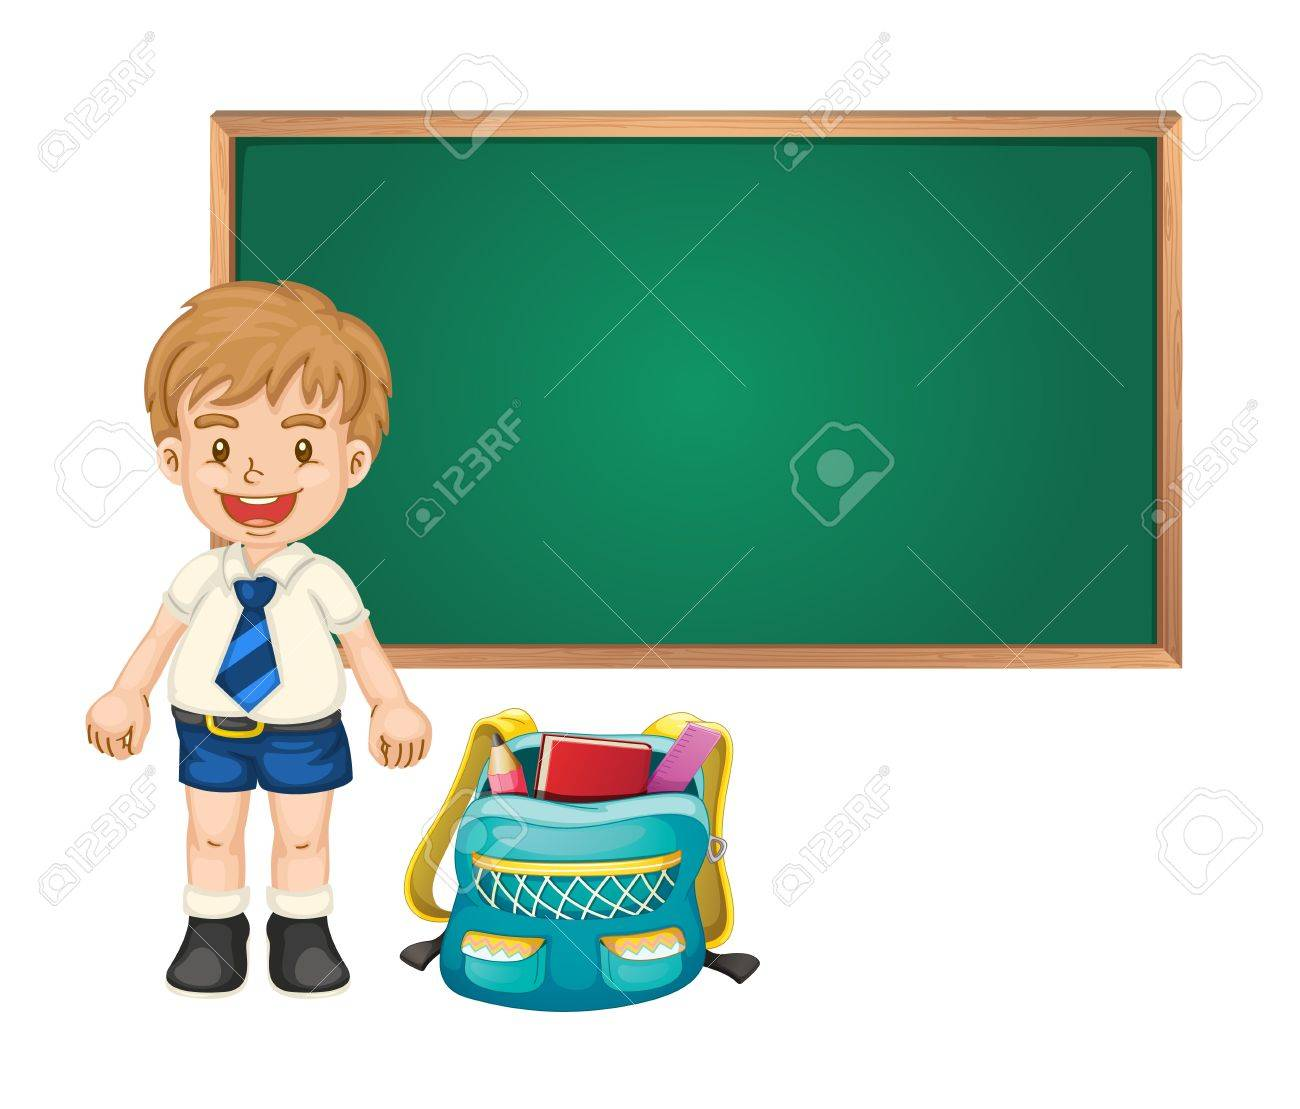 illustration of a boy and green board on white background Stock Vector - 15667638